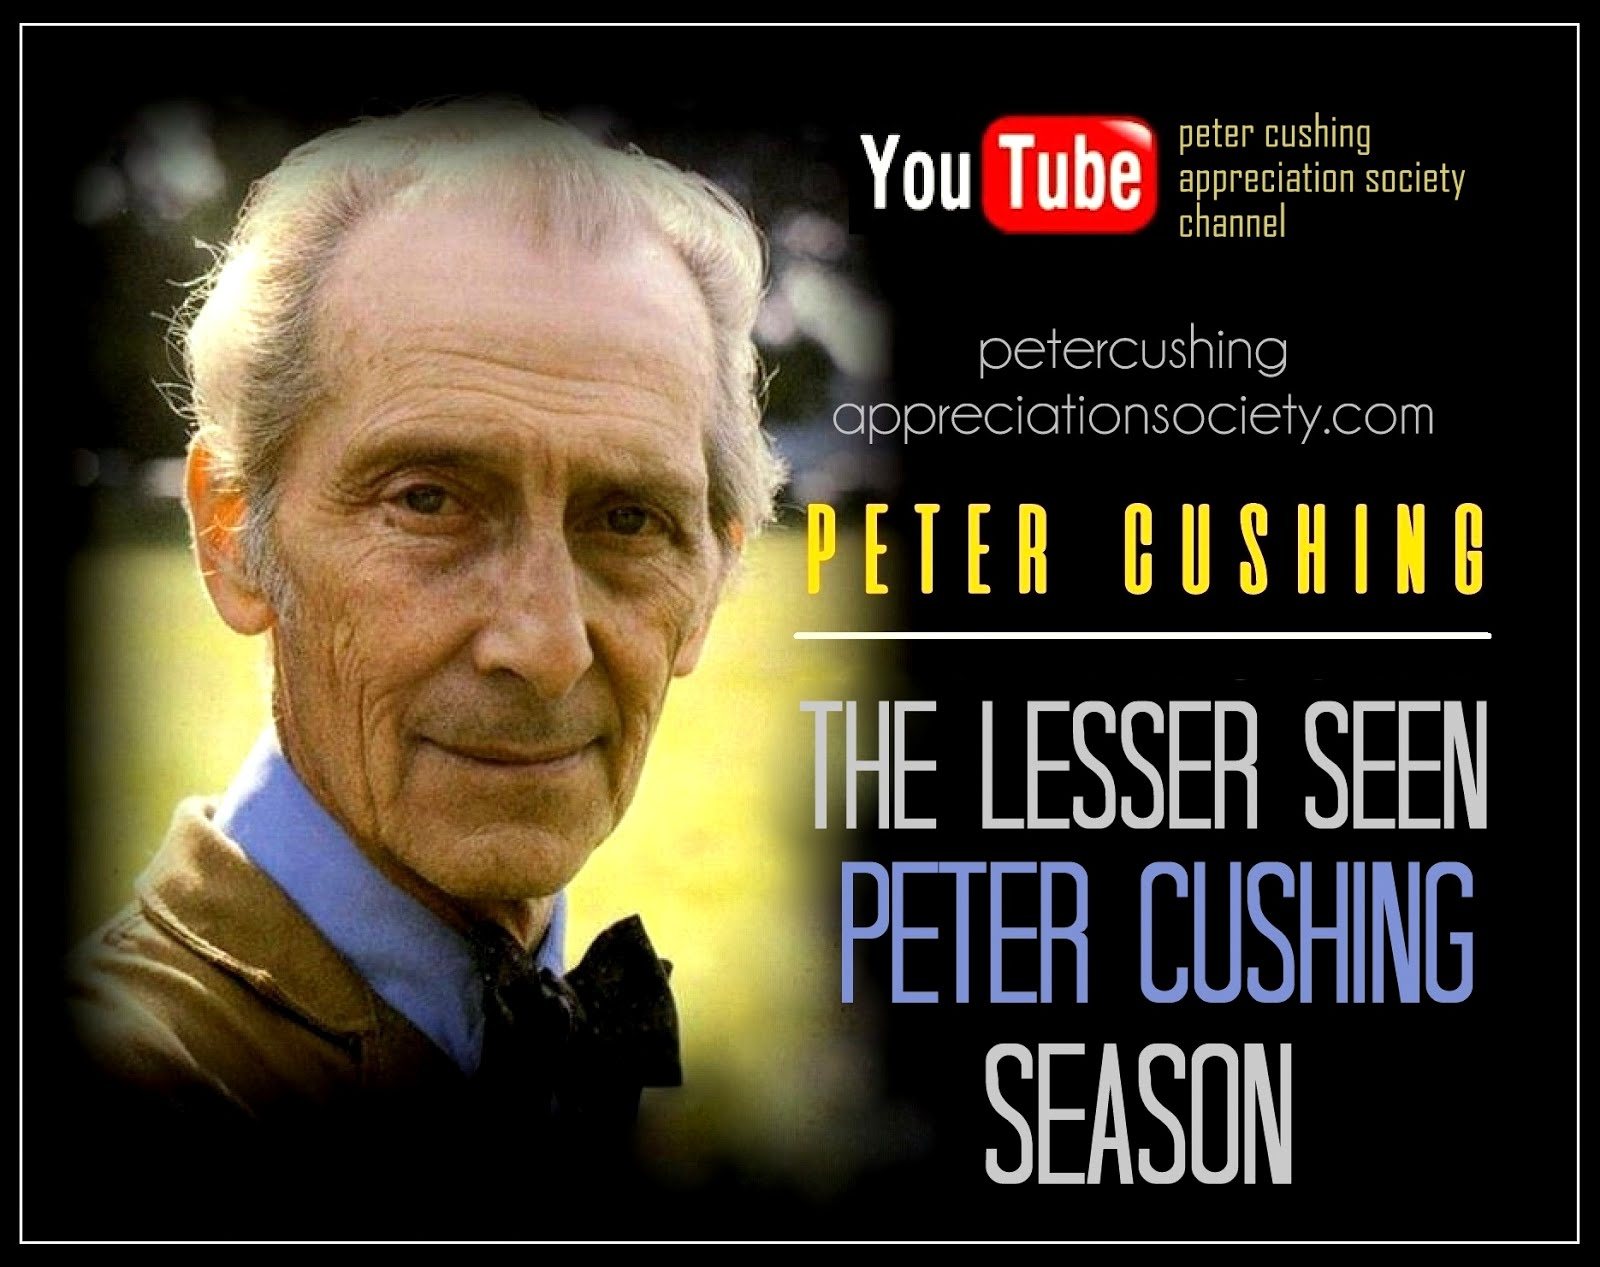 THE LESSER SEEN PETER CUSHING SEASON